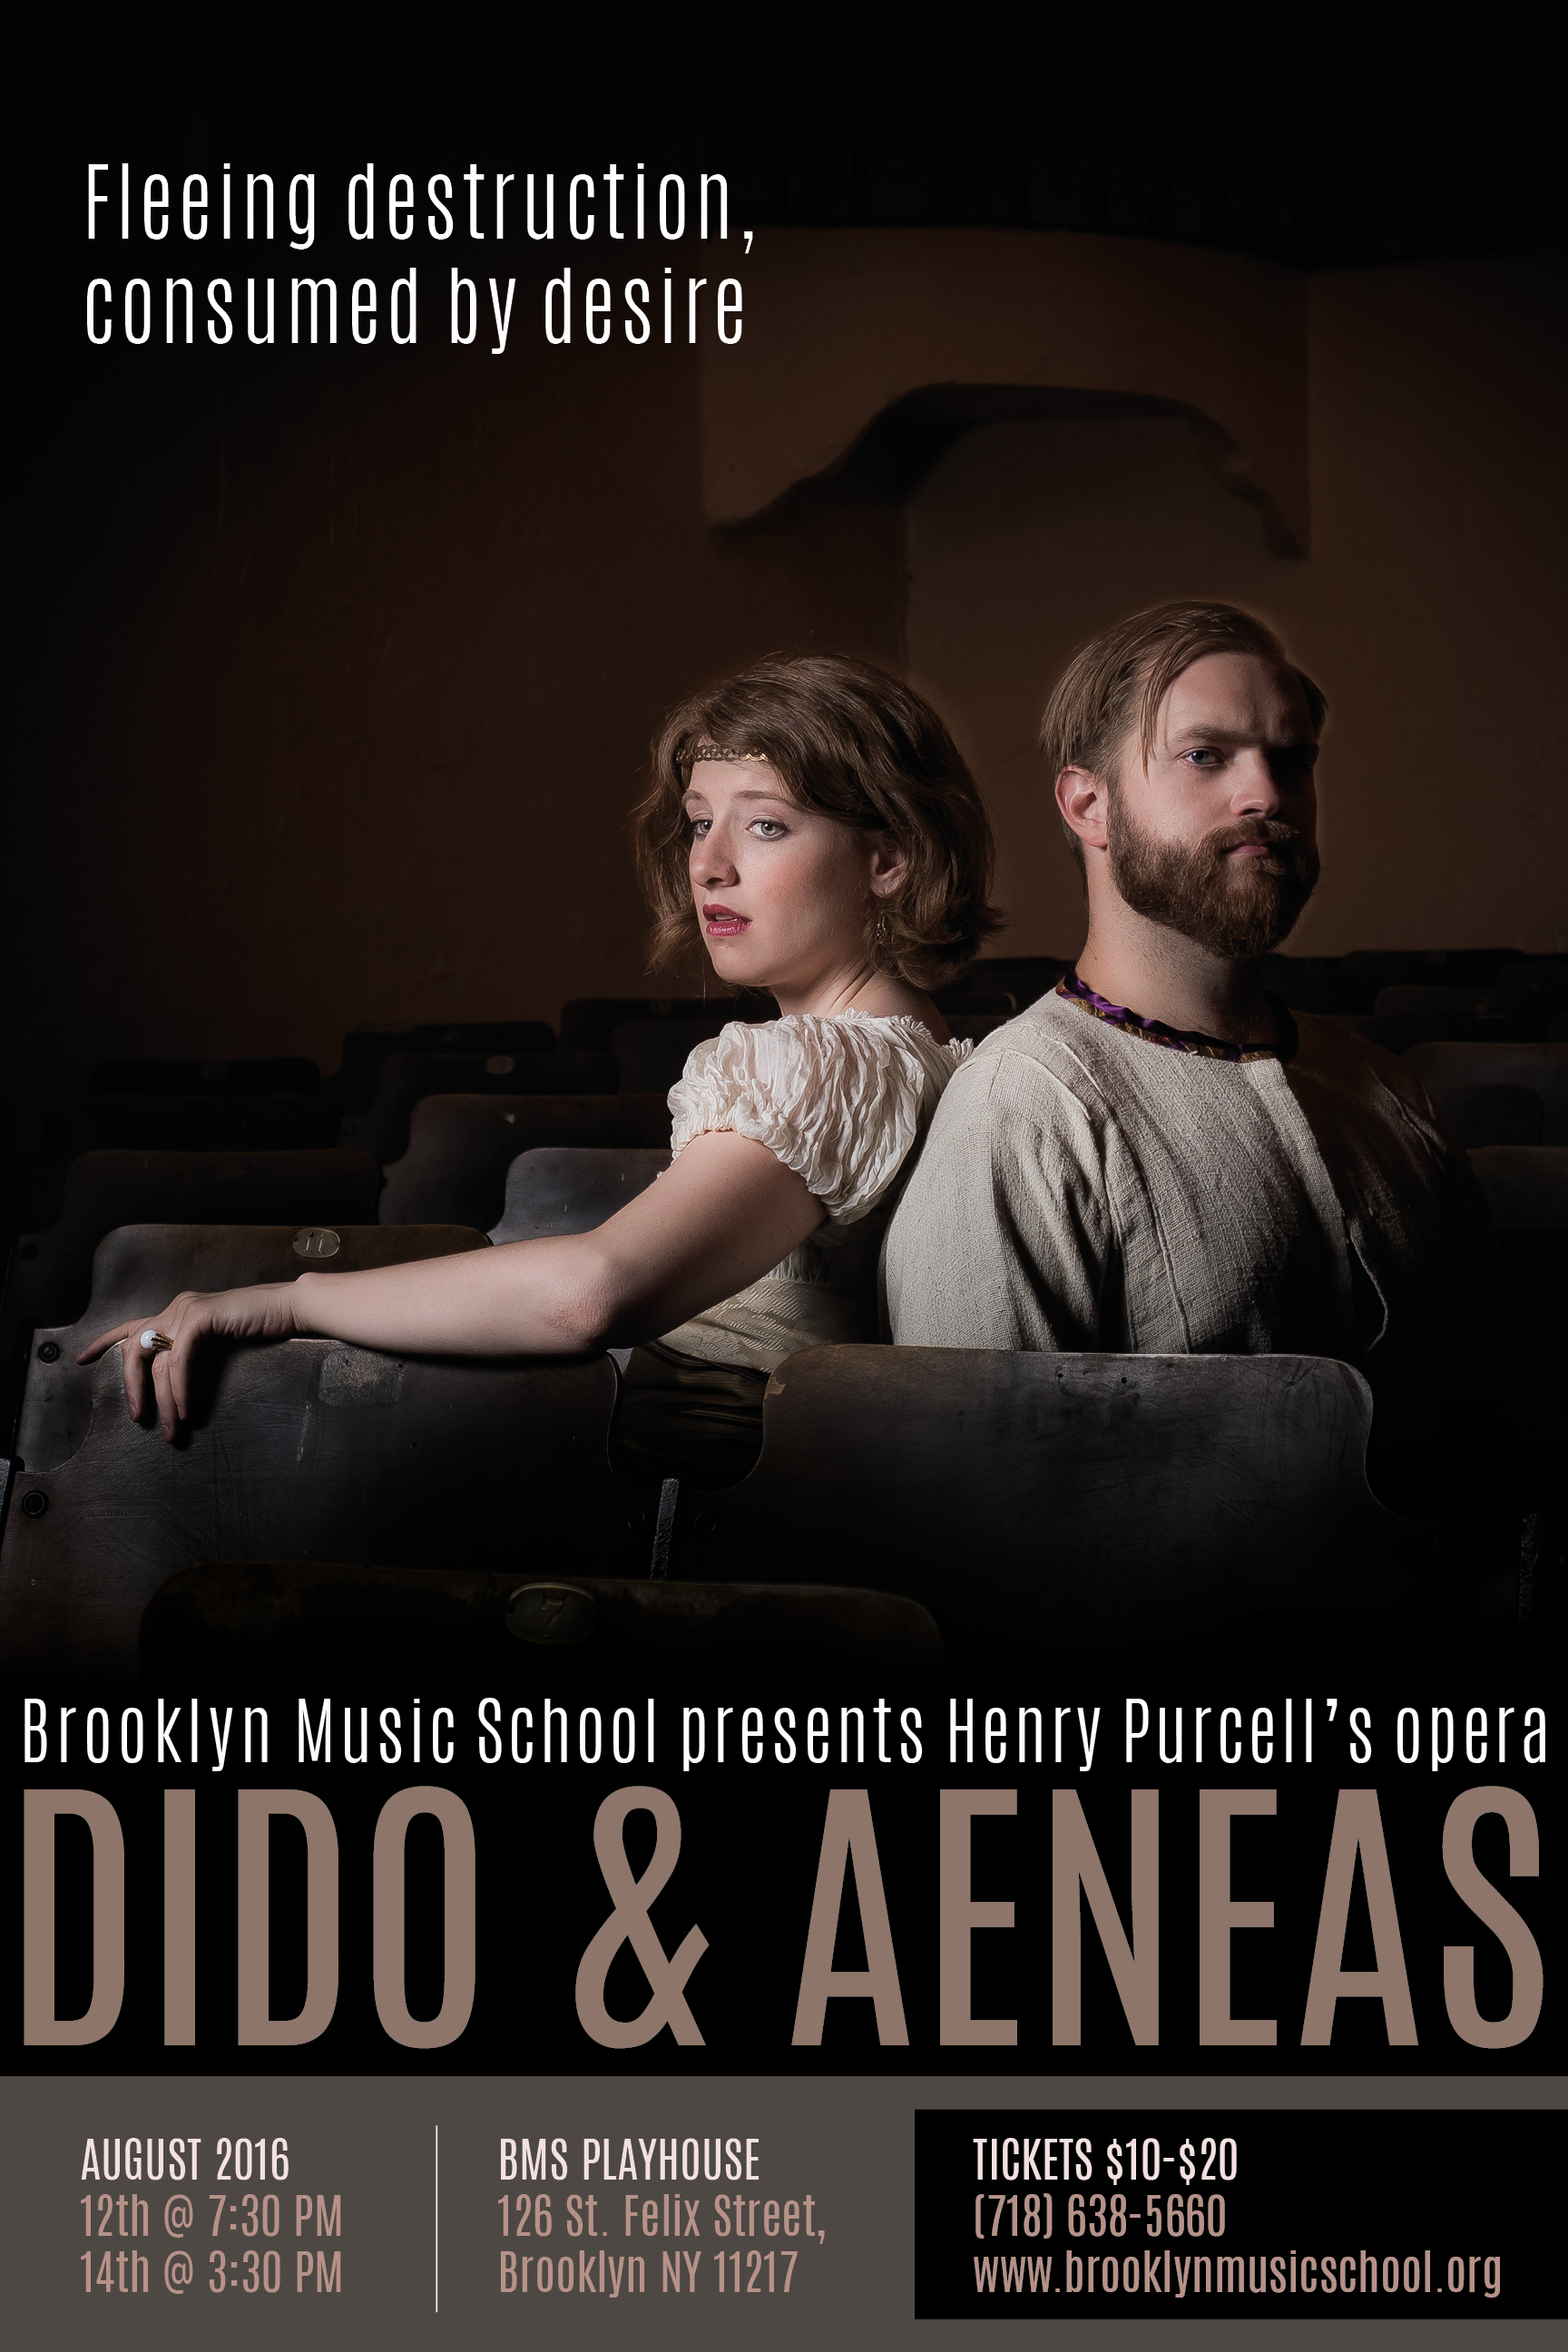 Producer, Dido & Aeneas (Brooklyn Music School)